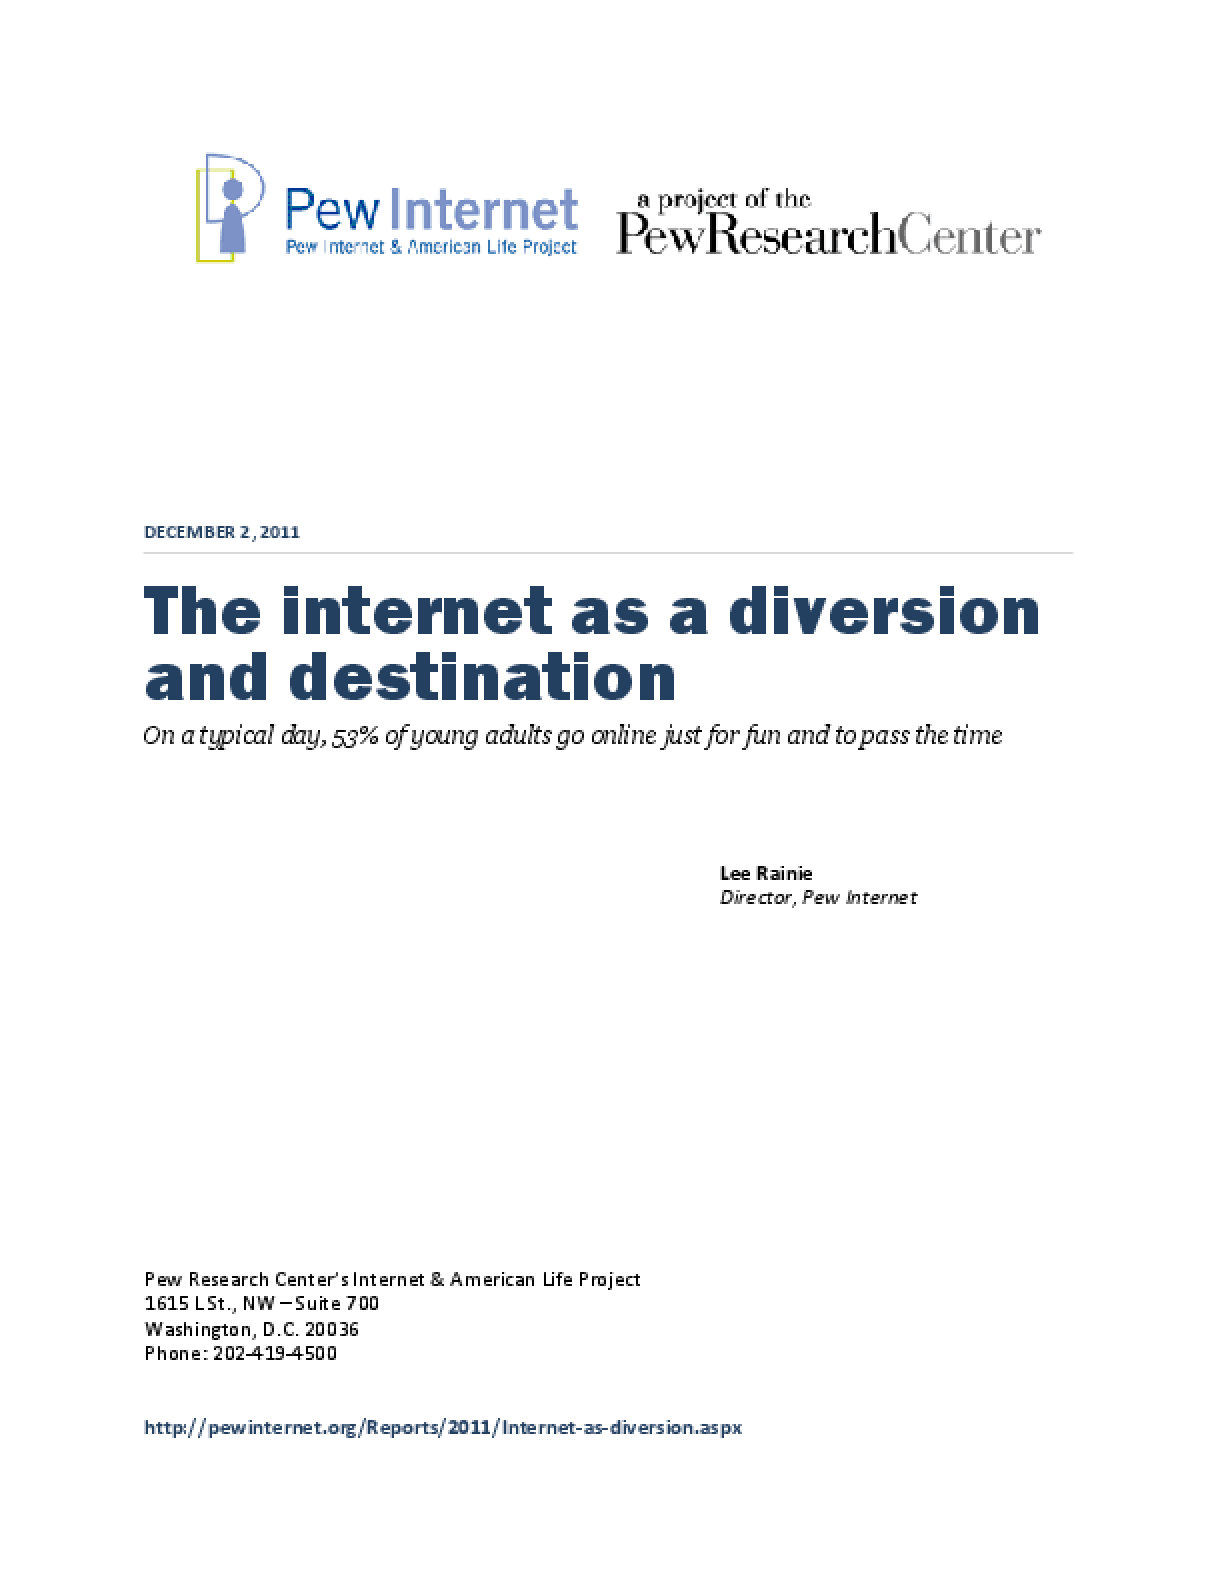 The Internet as a Diversion and Destination